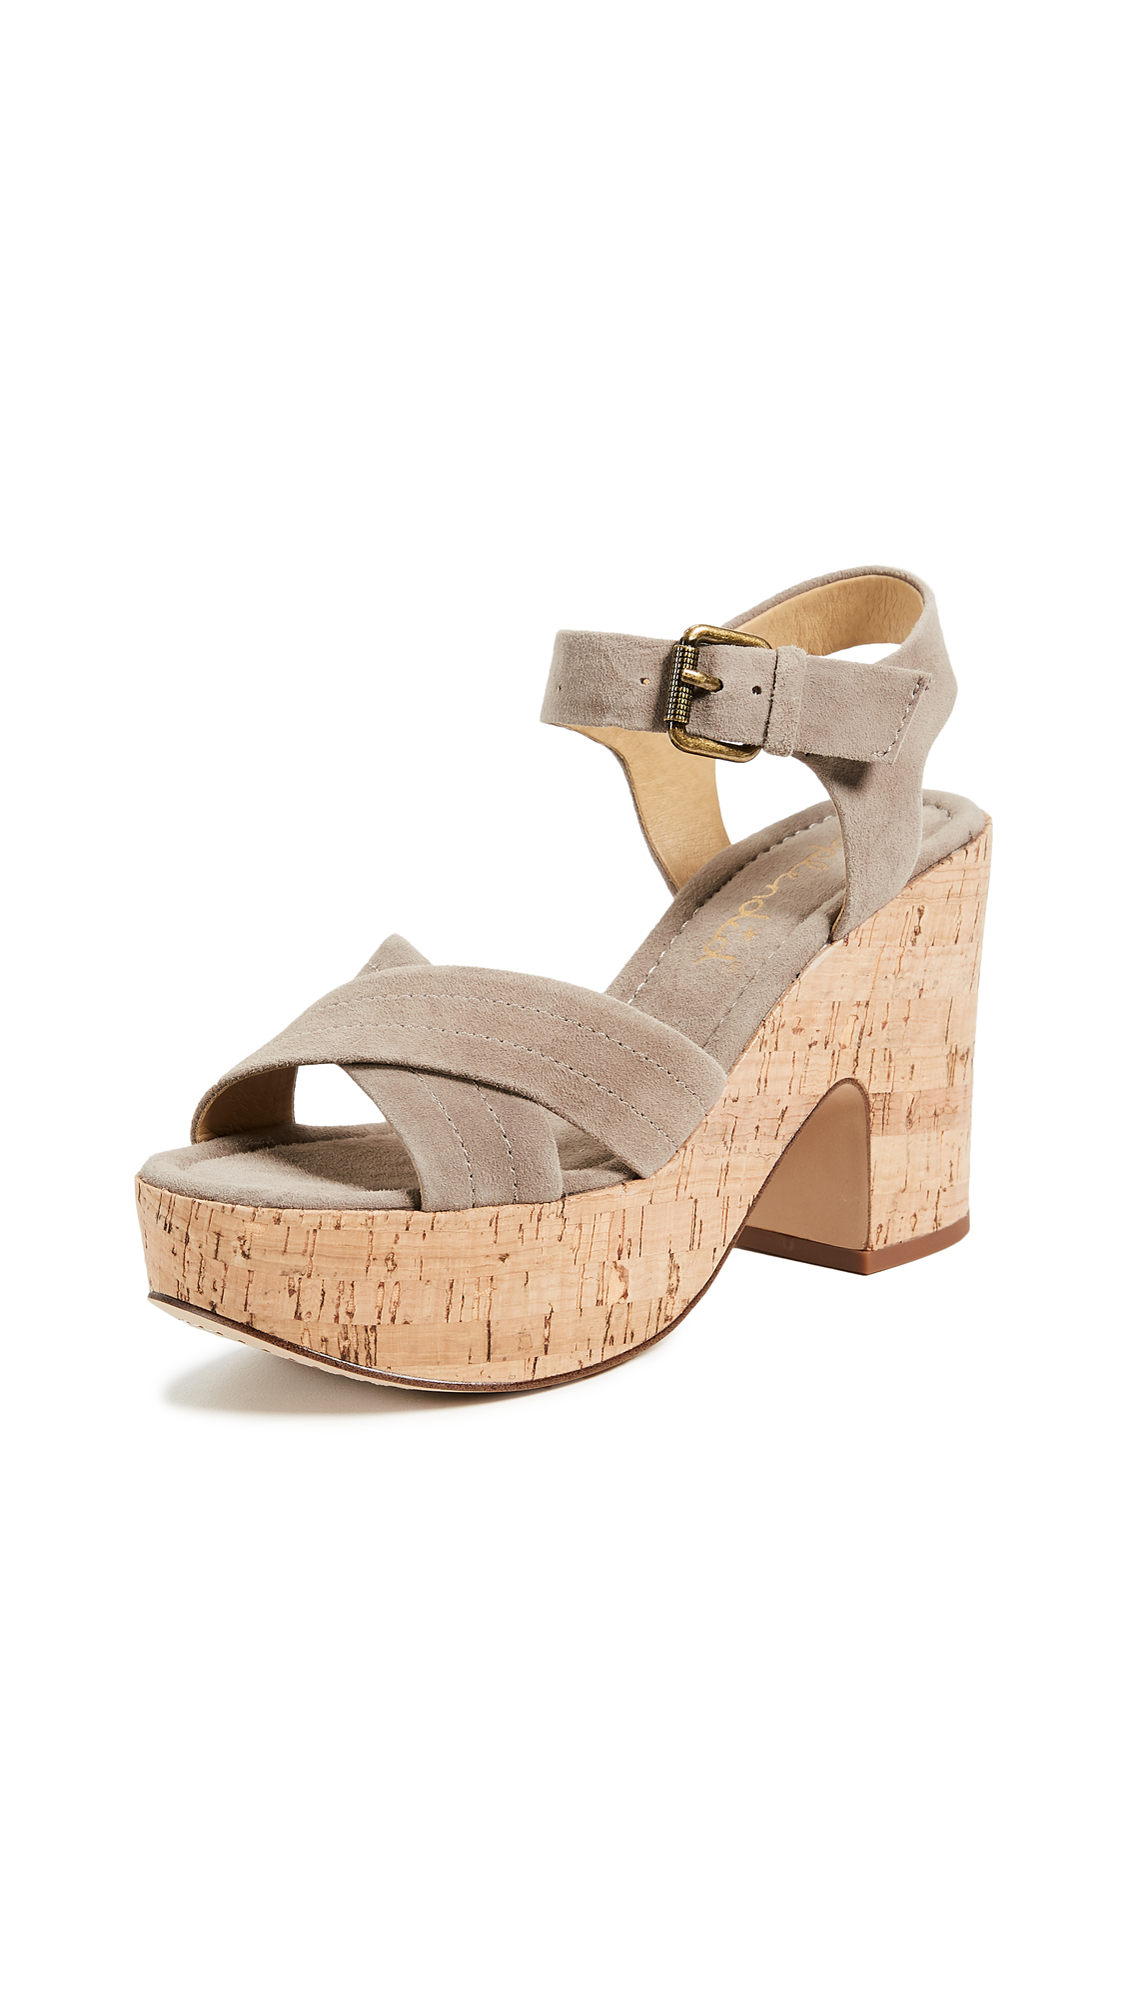 Splendid Flaire Cork Sandals - Taupe